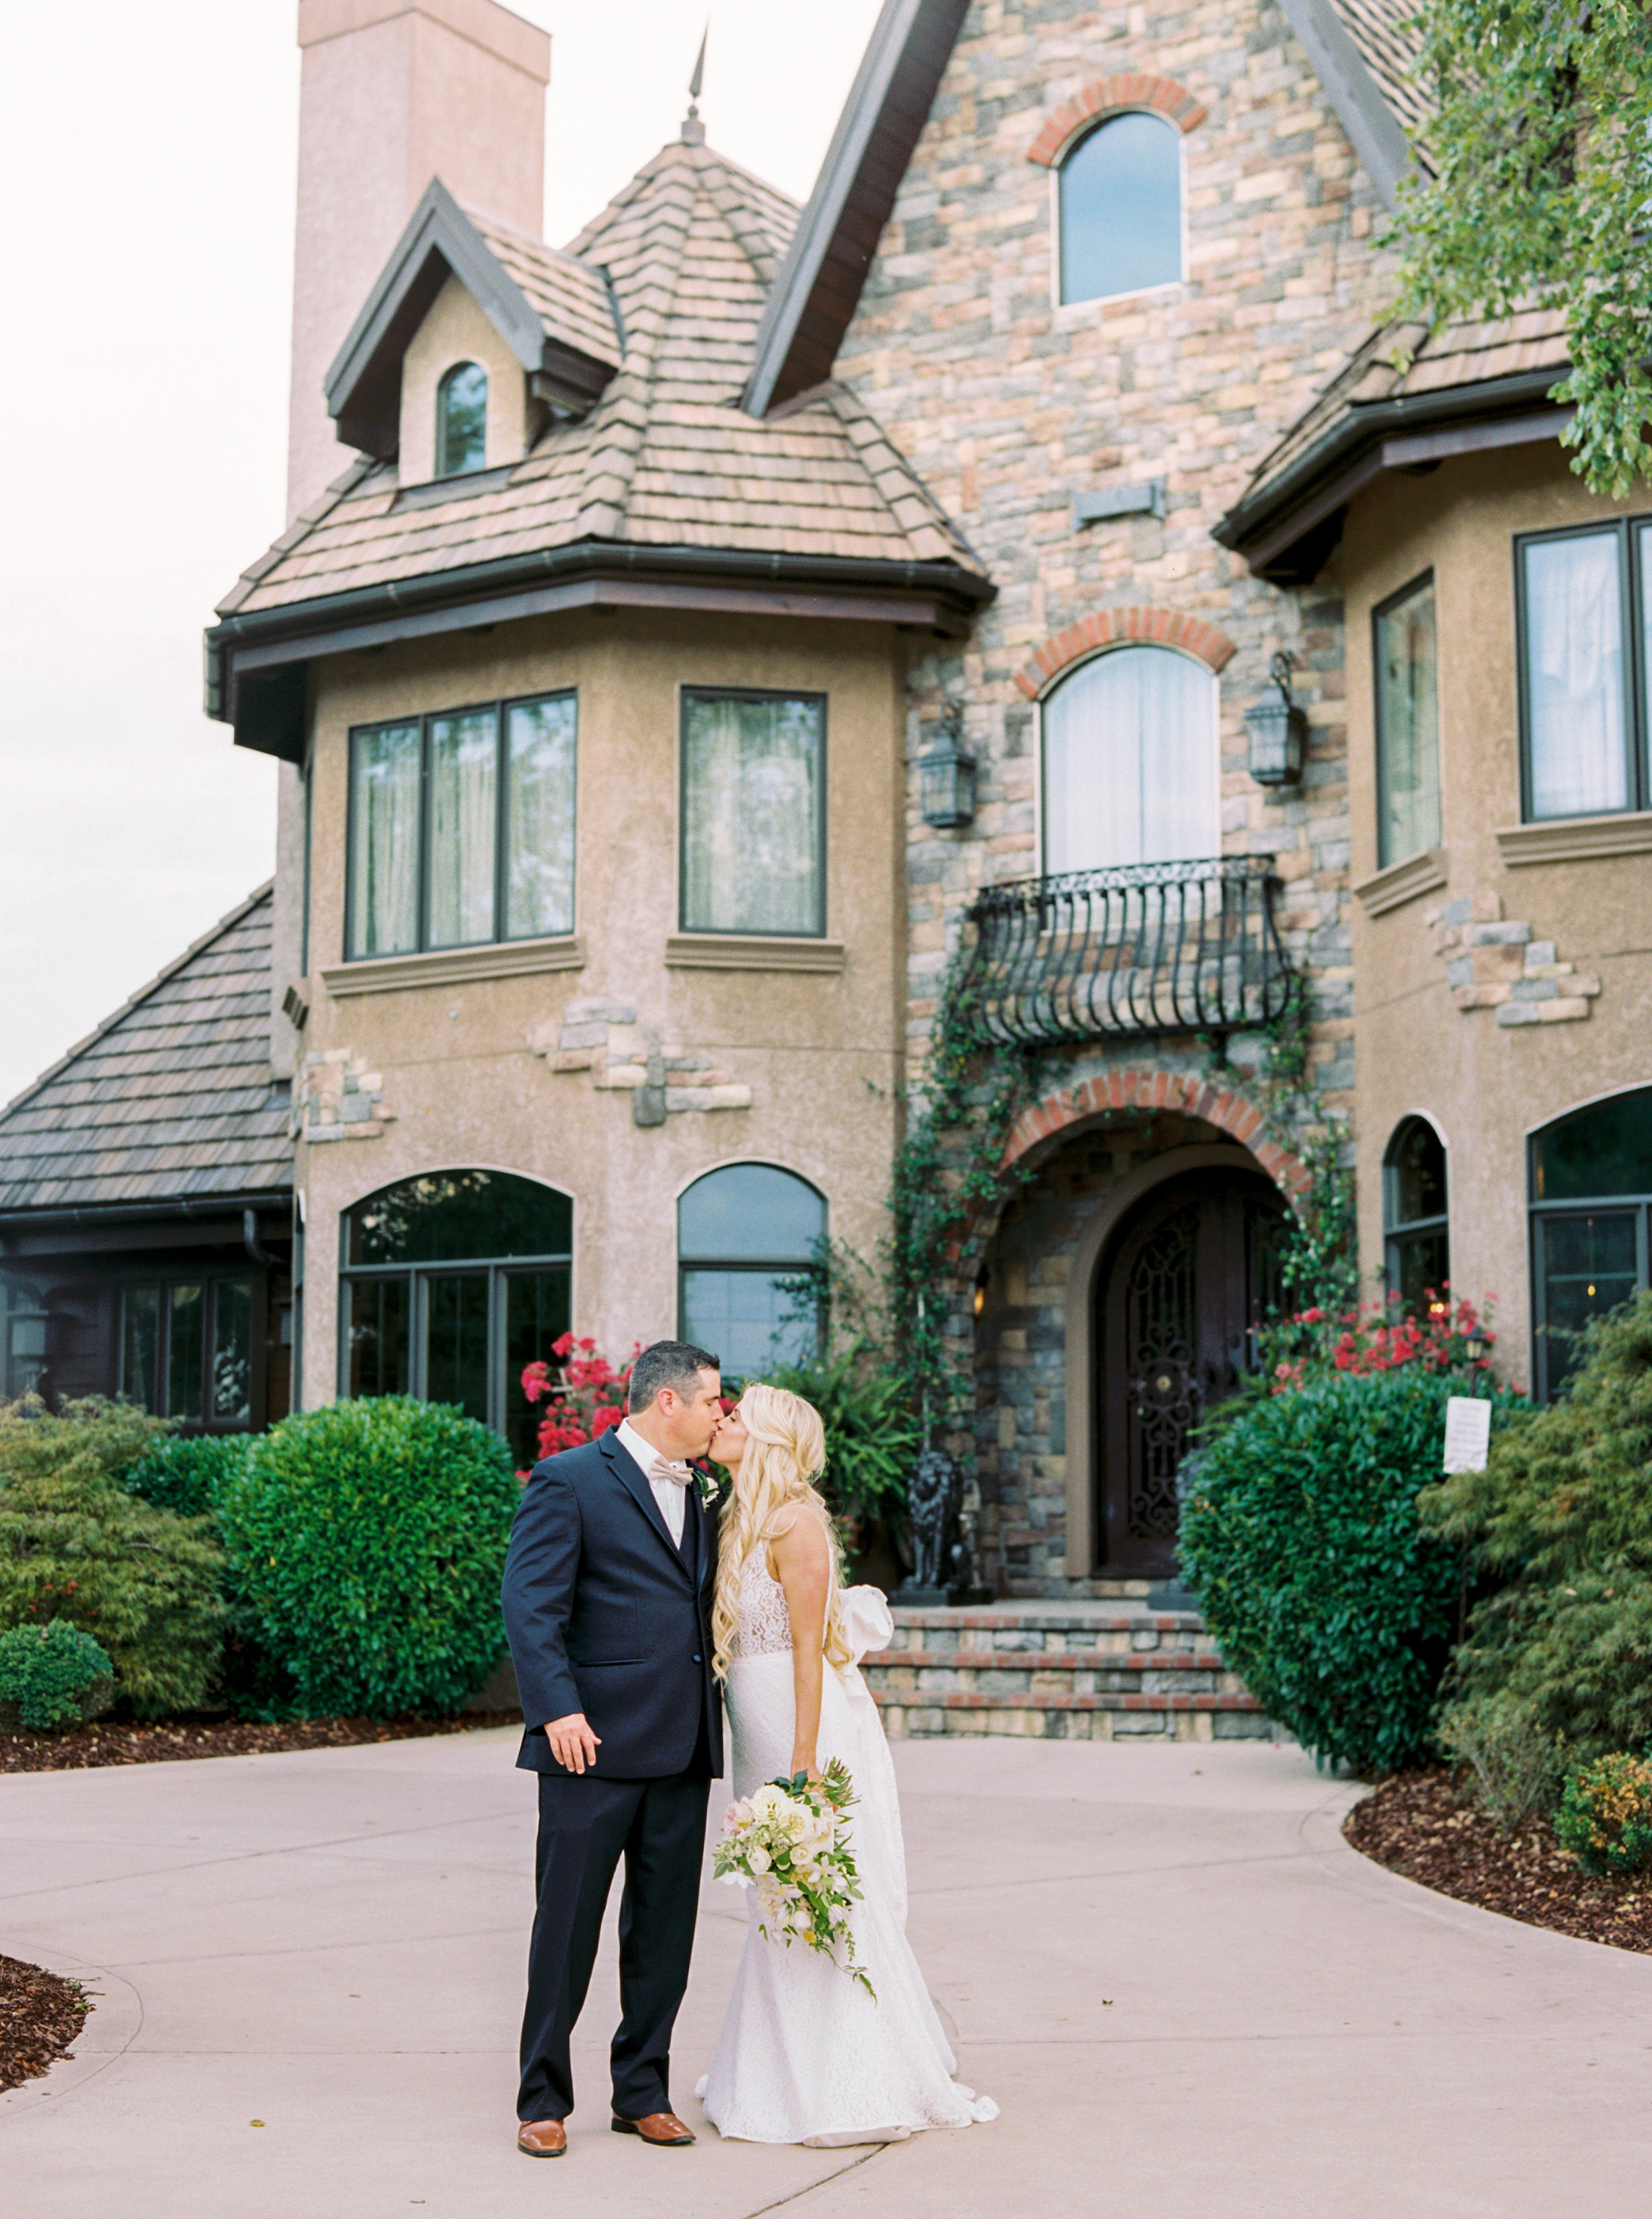 Champagne Manor - Charlotte NC Wedding - Perry Vaile Photography-299.jpg